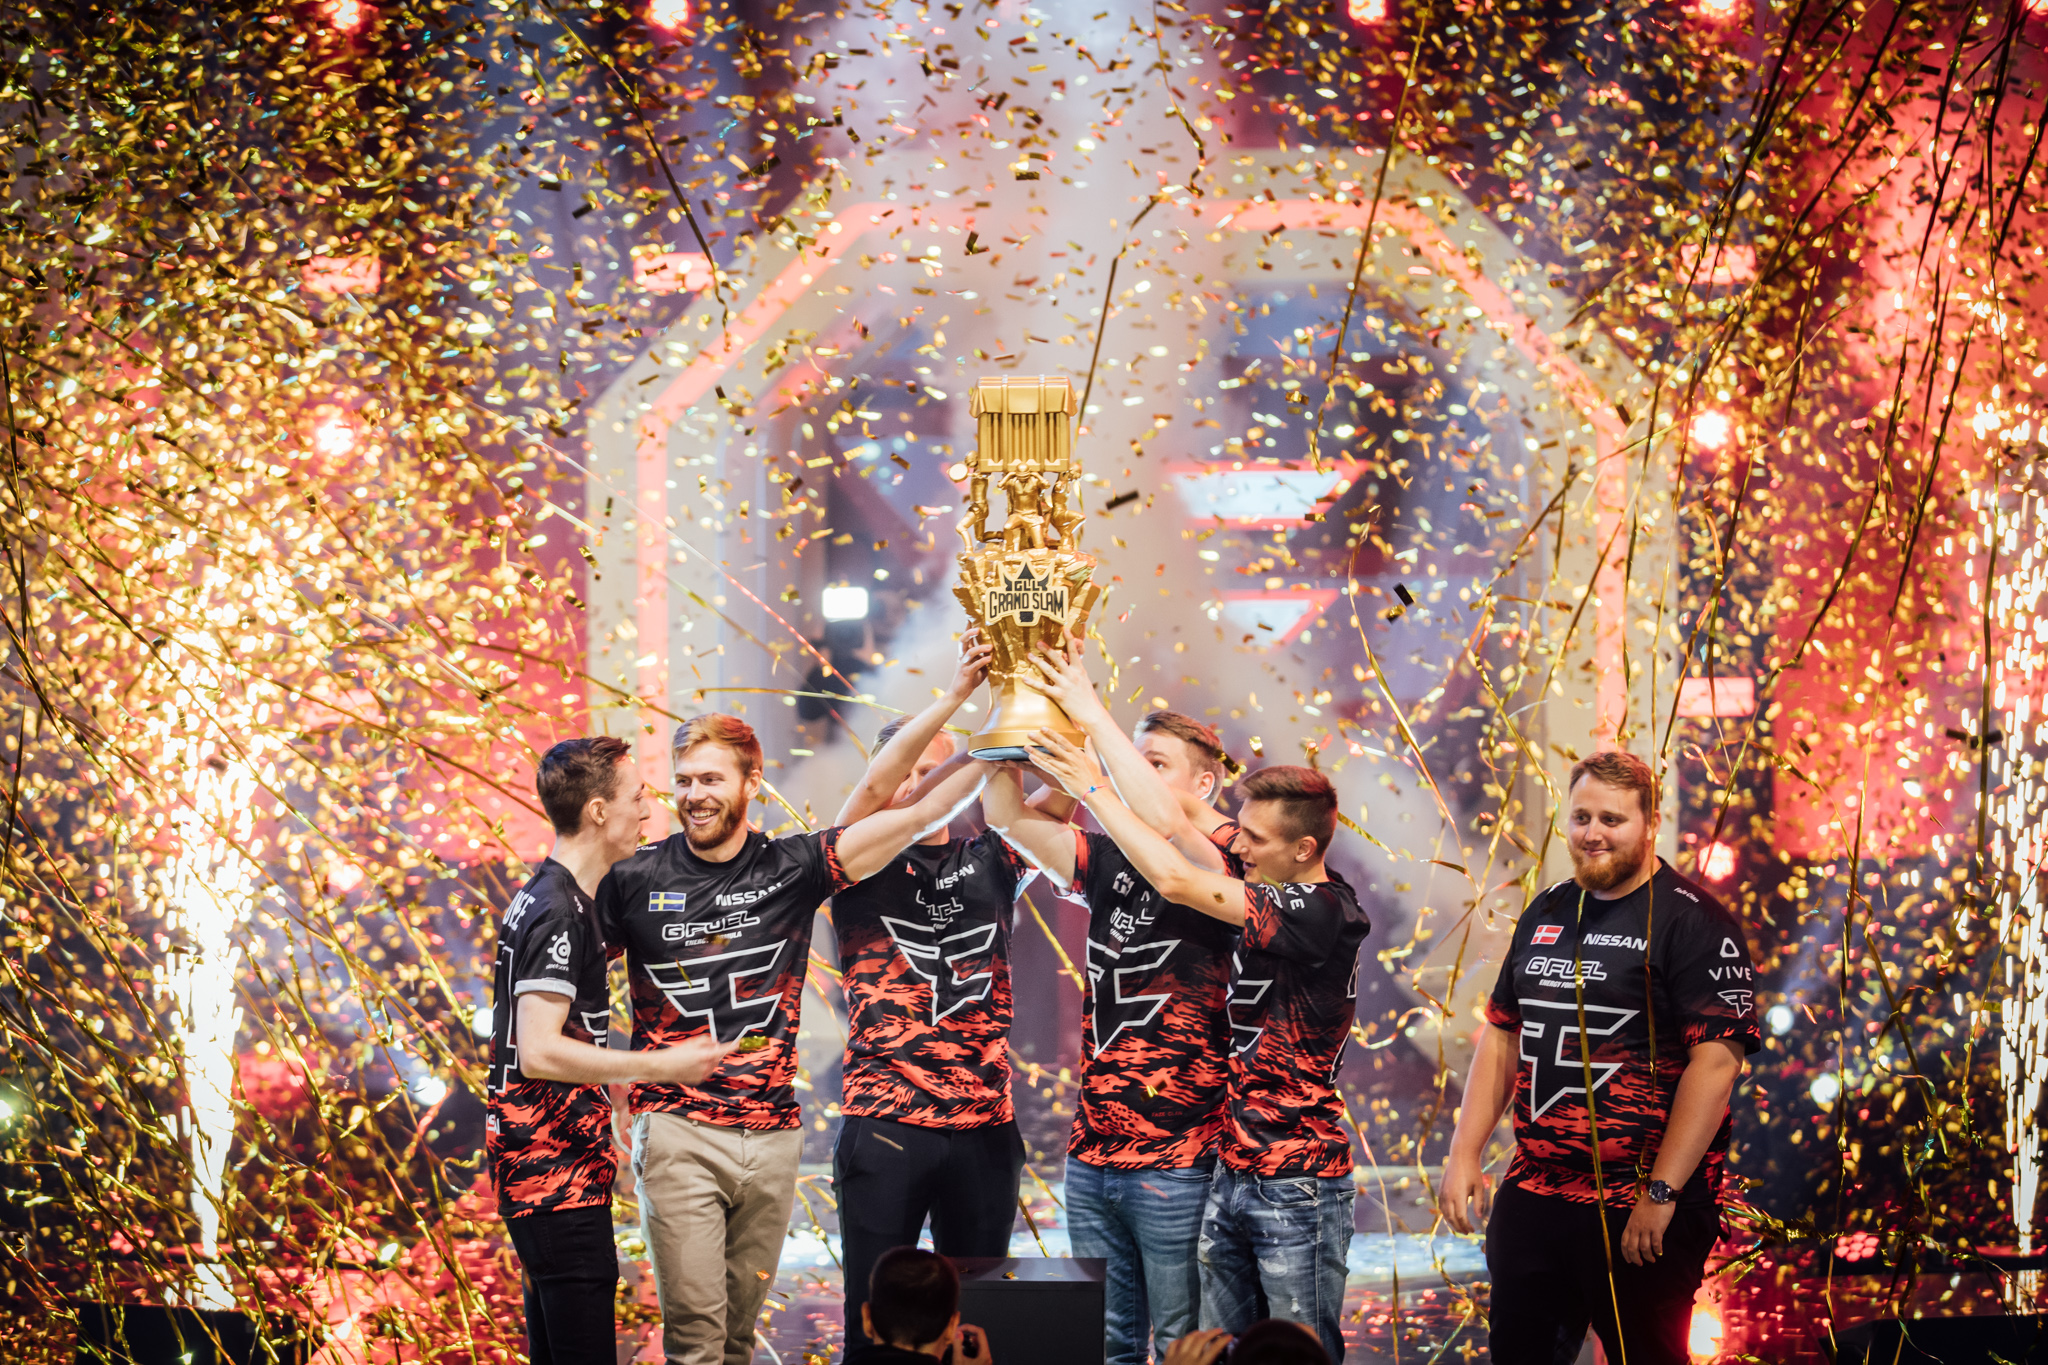 CONGRATULATIONS to FaZe Clan for winning the GLL Grand Slam: PUBG Classic!